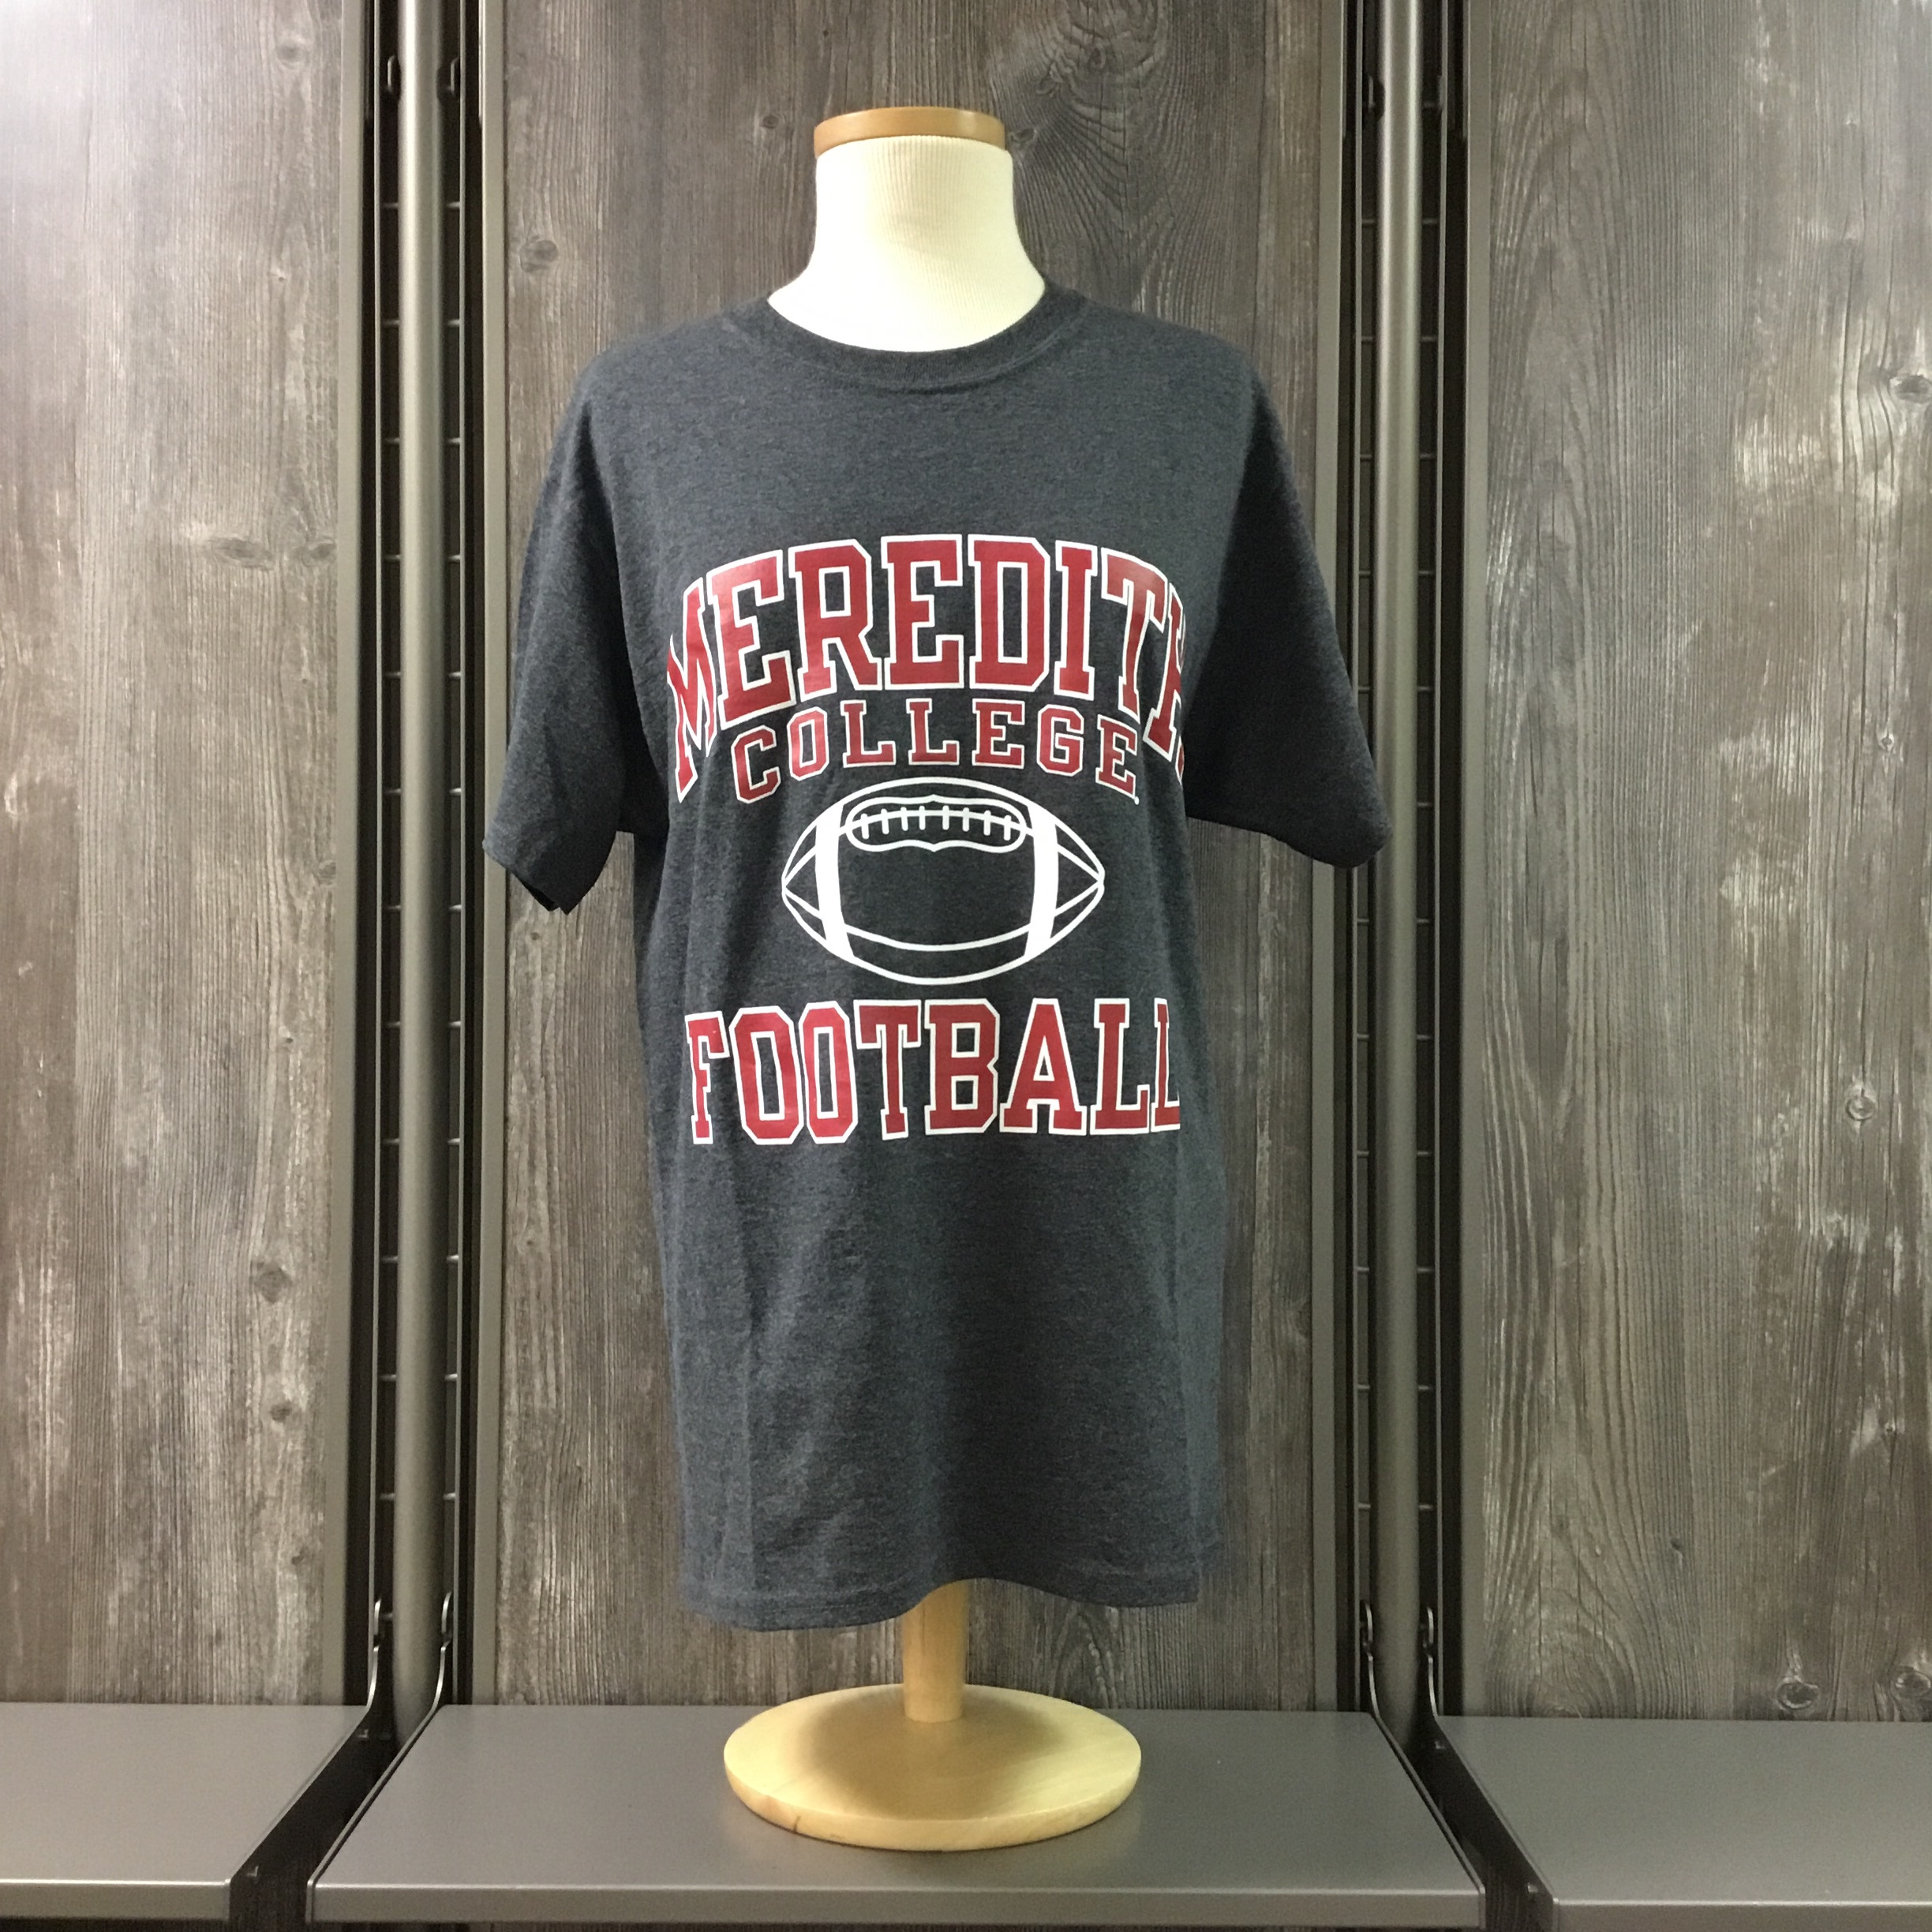 Image for the Football T-Shirt product